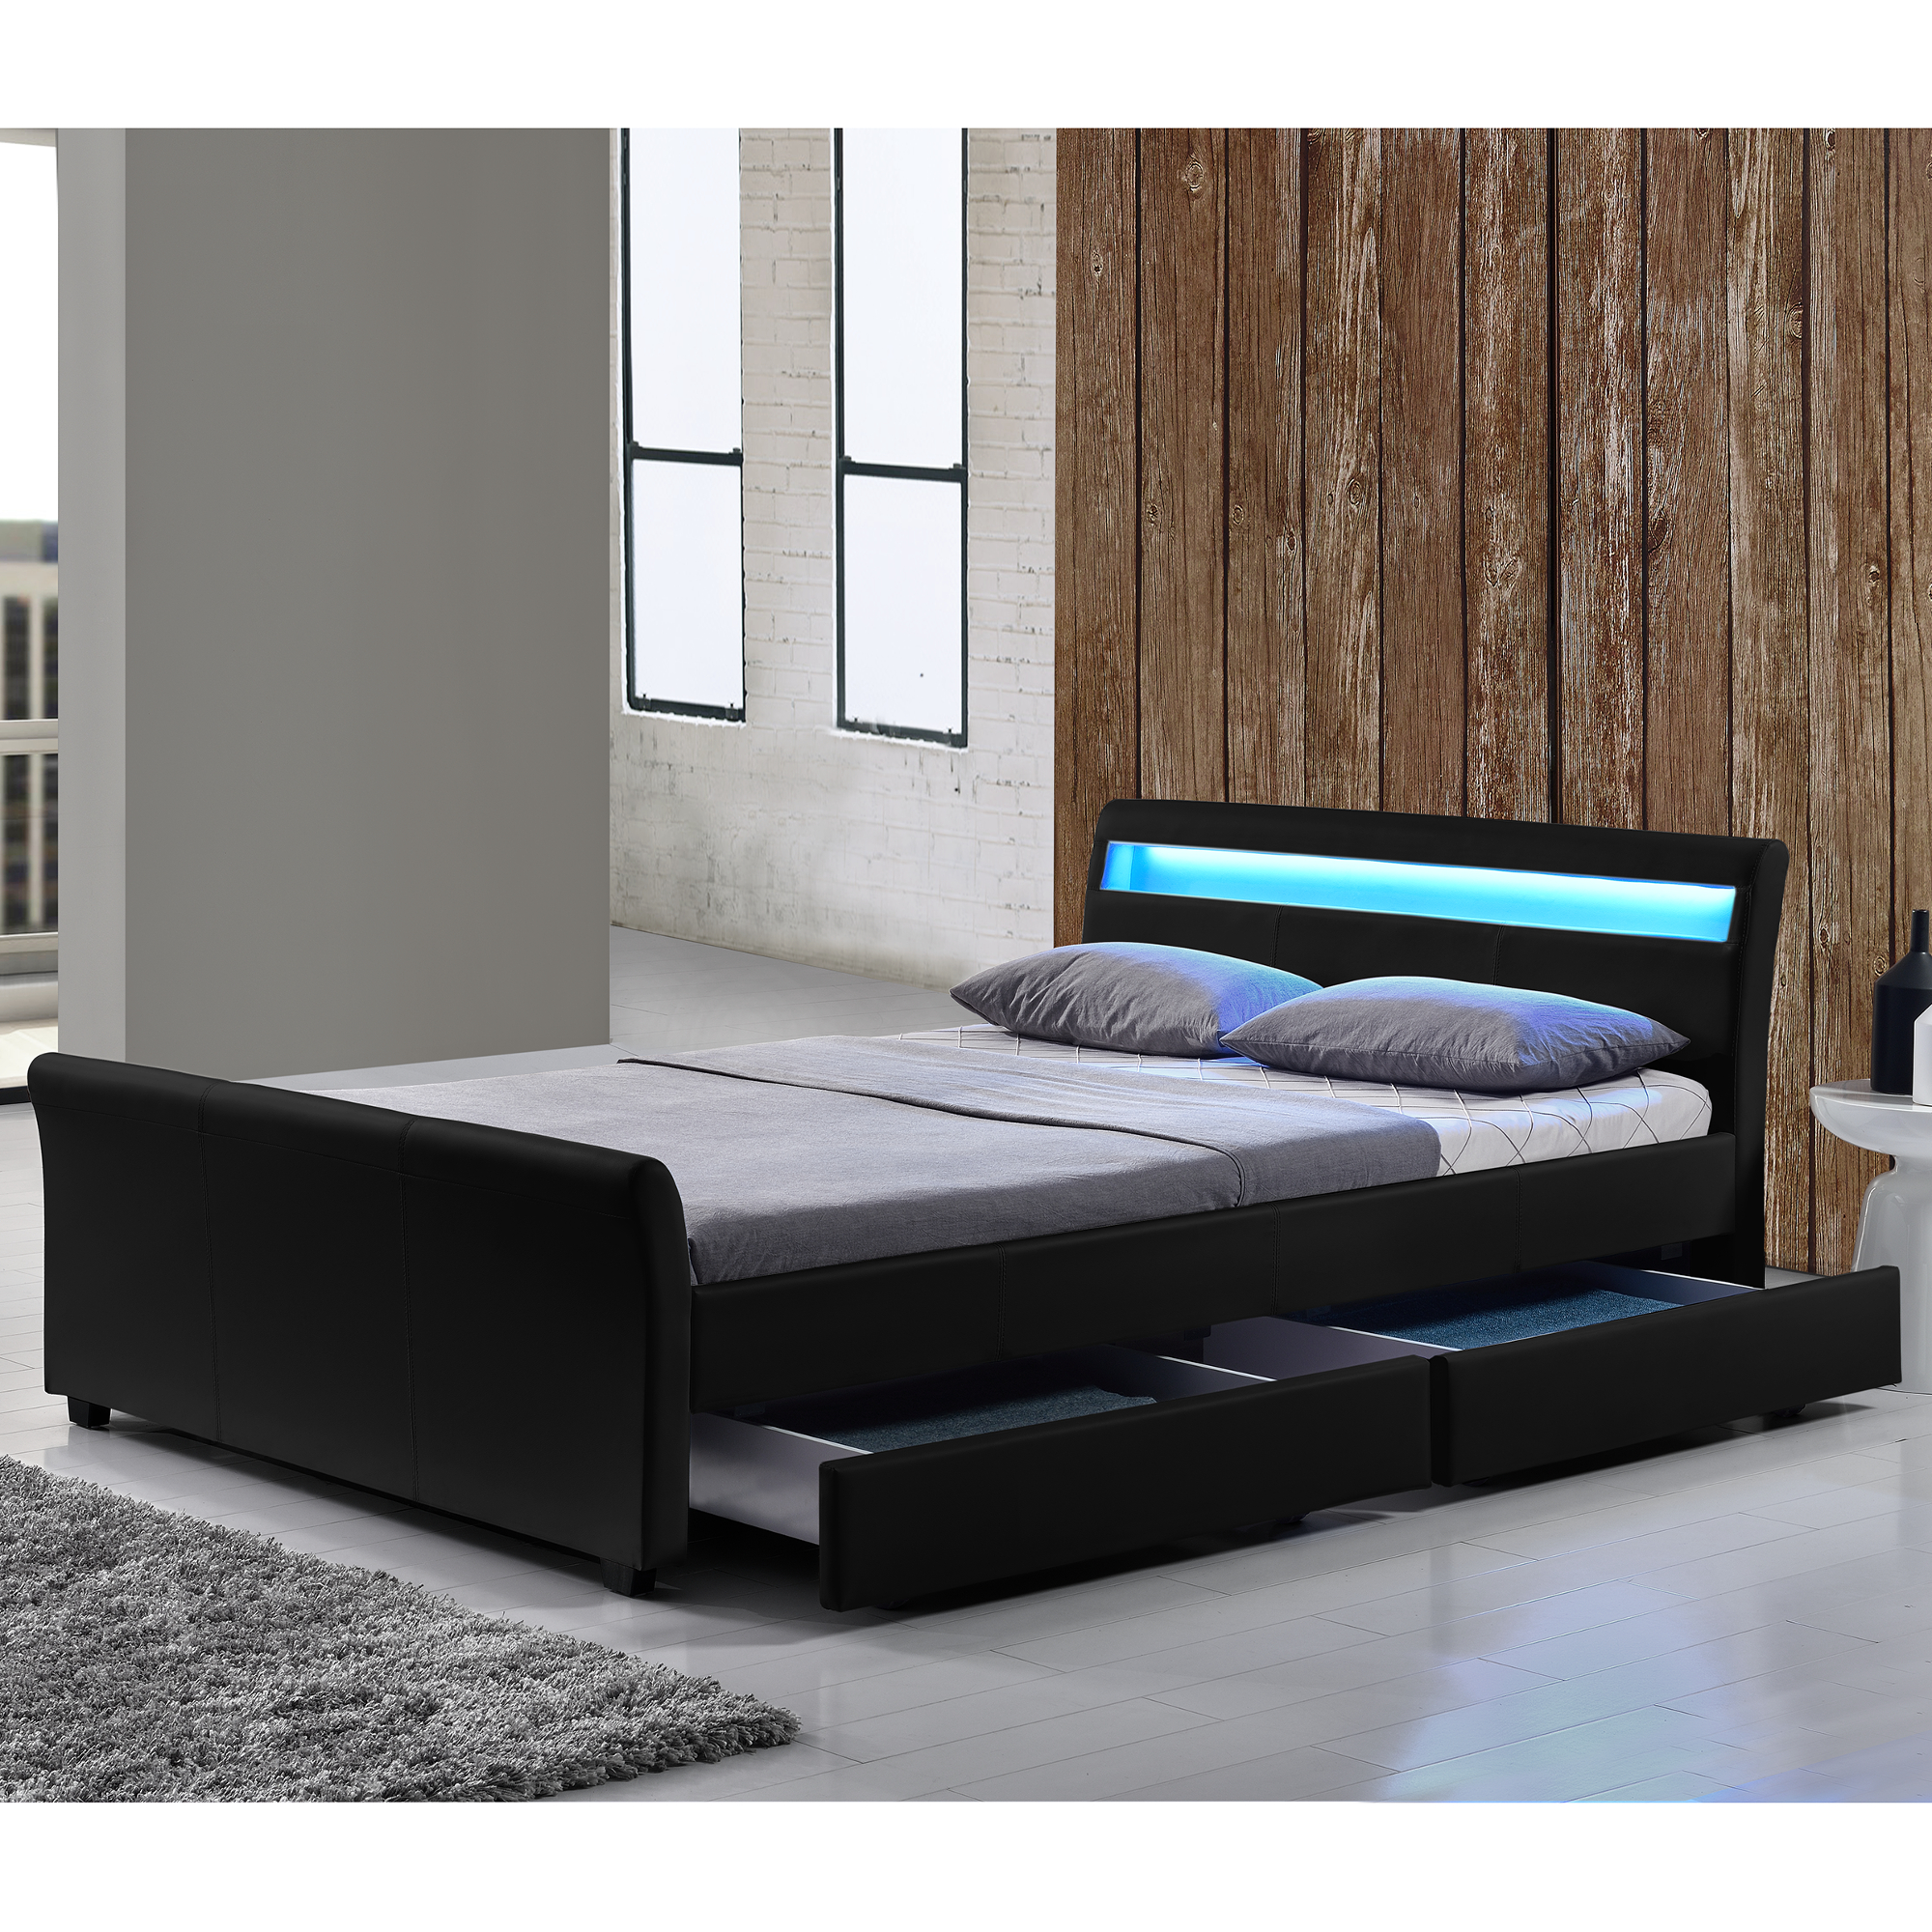 design polsterbett 140 160 180 200 x 200 cm doppel ehe bett gestell kunst leder ebay. Black Bedroom Furniture Sets. Home Design Ideas